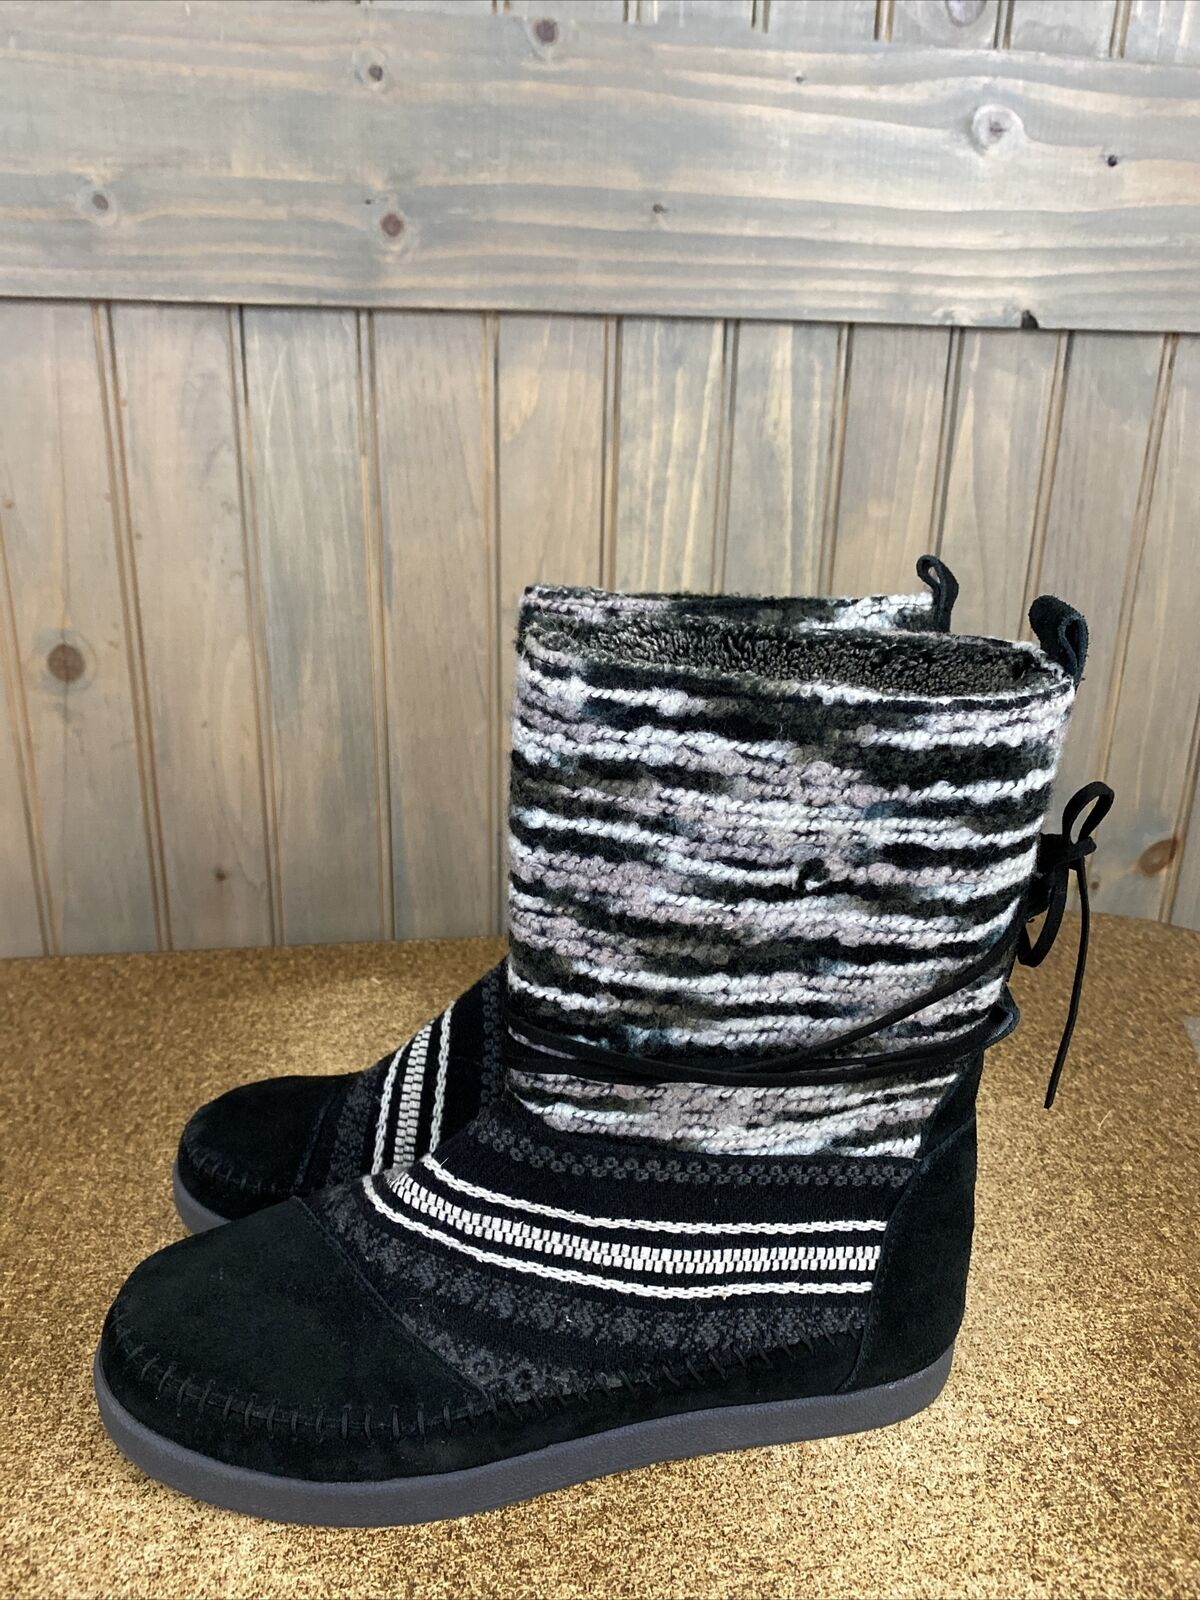 TOMS Nepal Boots Sz 10 Woven Knit Top Suede Fleece Lined Black White Gray